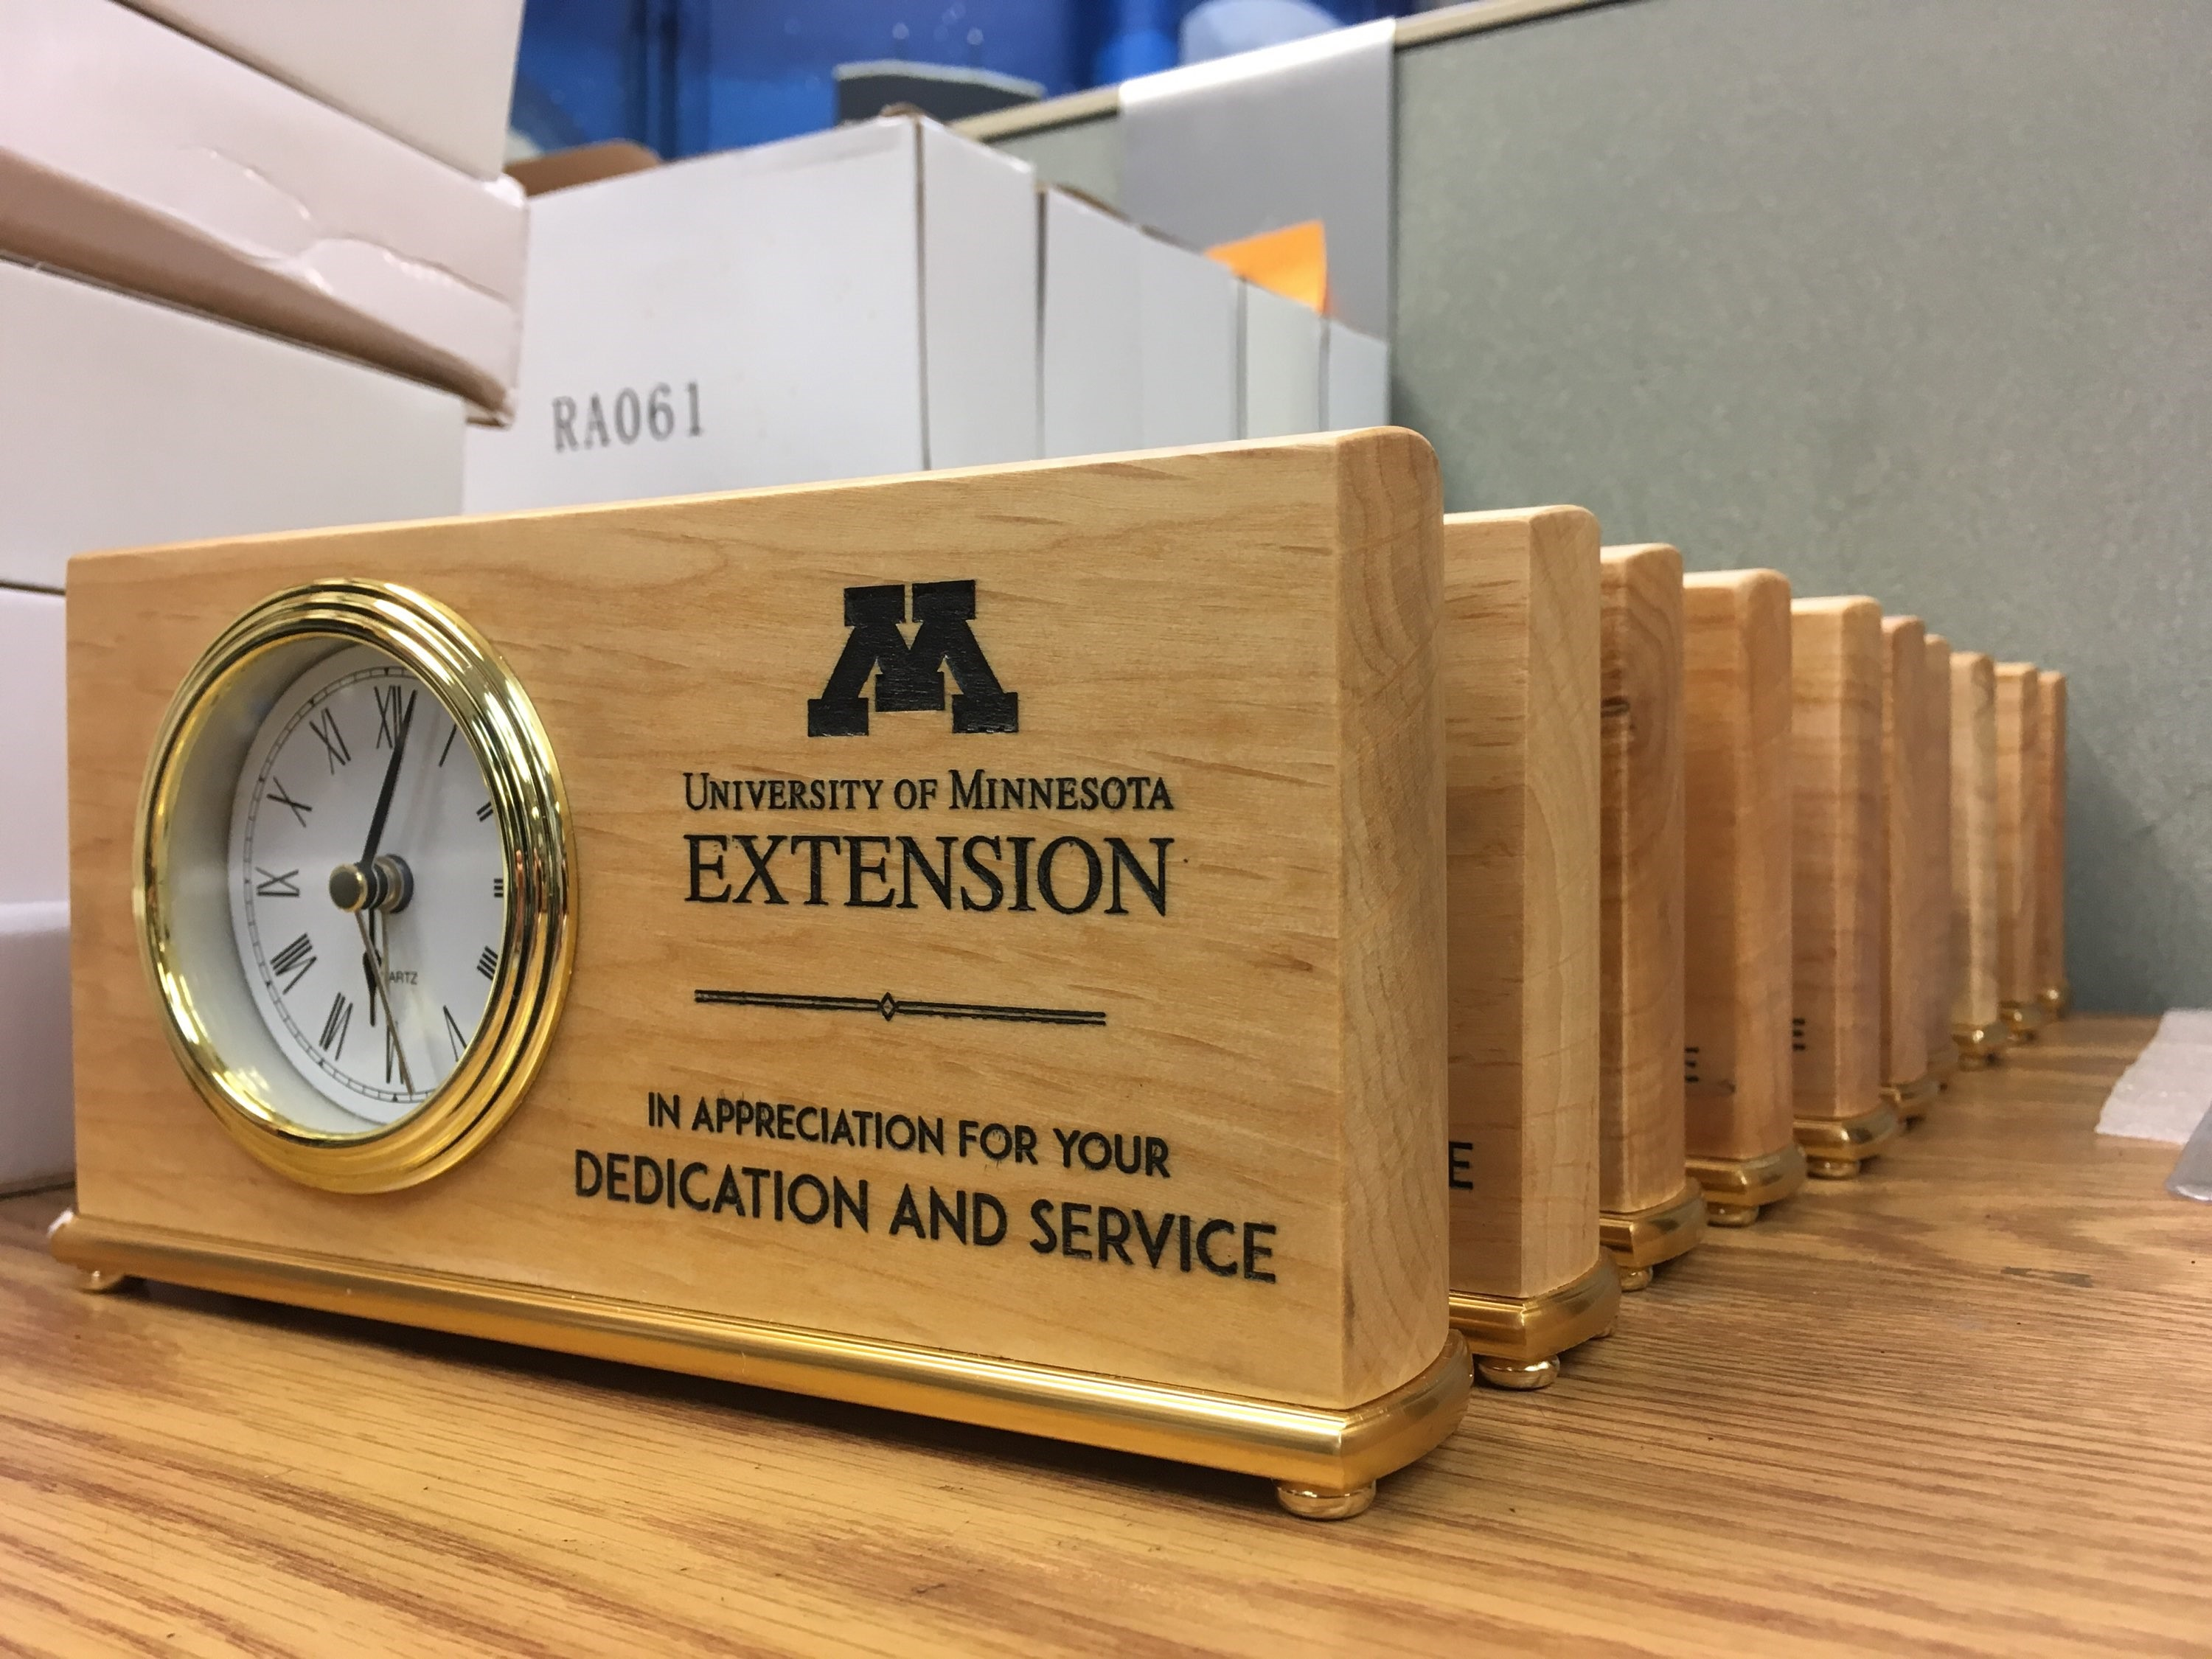 Personalized Gifts in Minneapolis